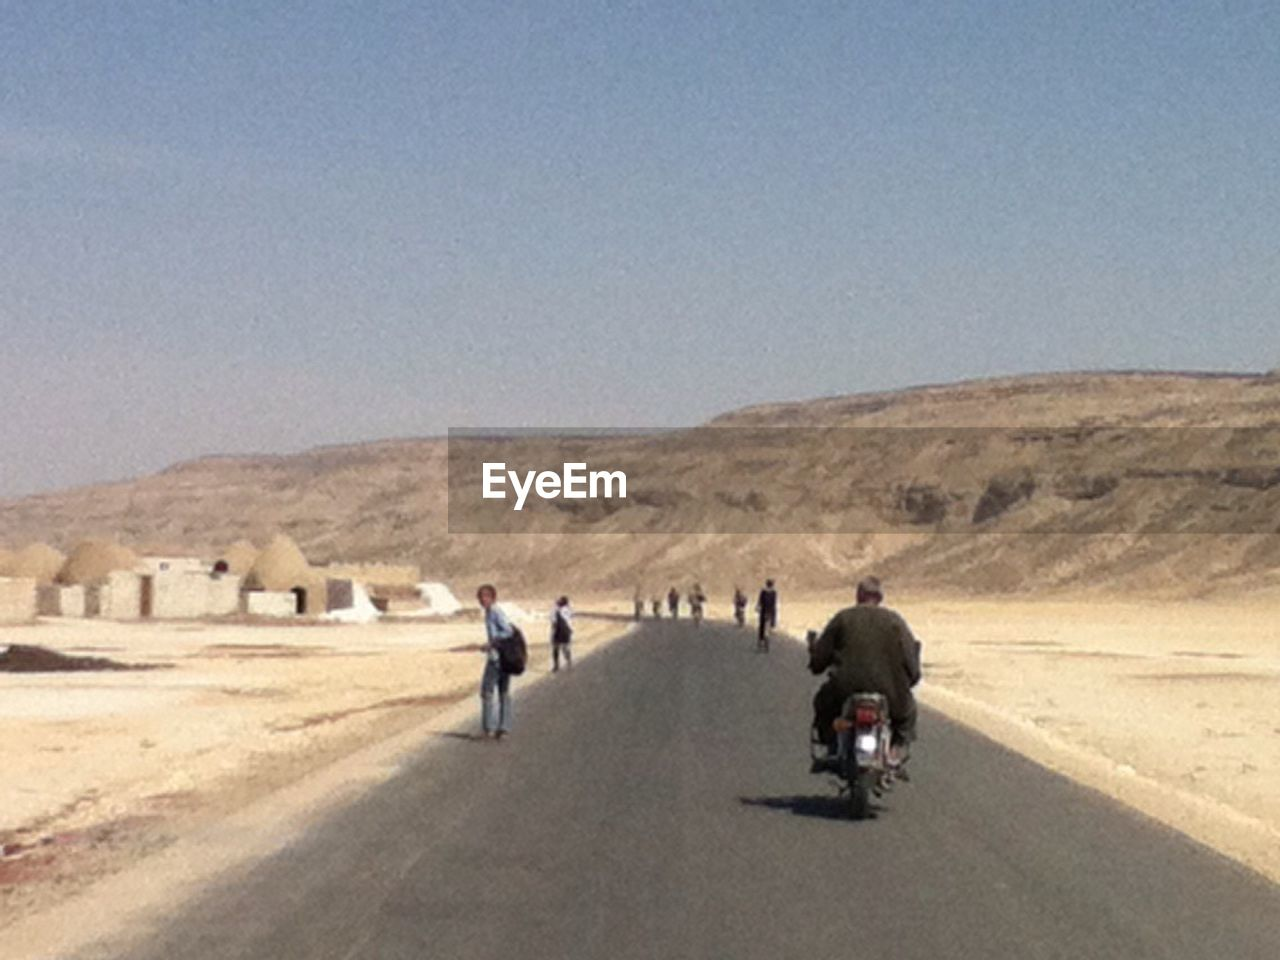 desert, landscape, road, arid climate, motorcycle, transportation, day, outdoors, riding, clear sky, biker, men, nature, sky, people, adults only, adult